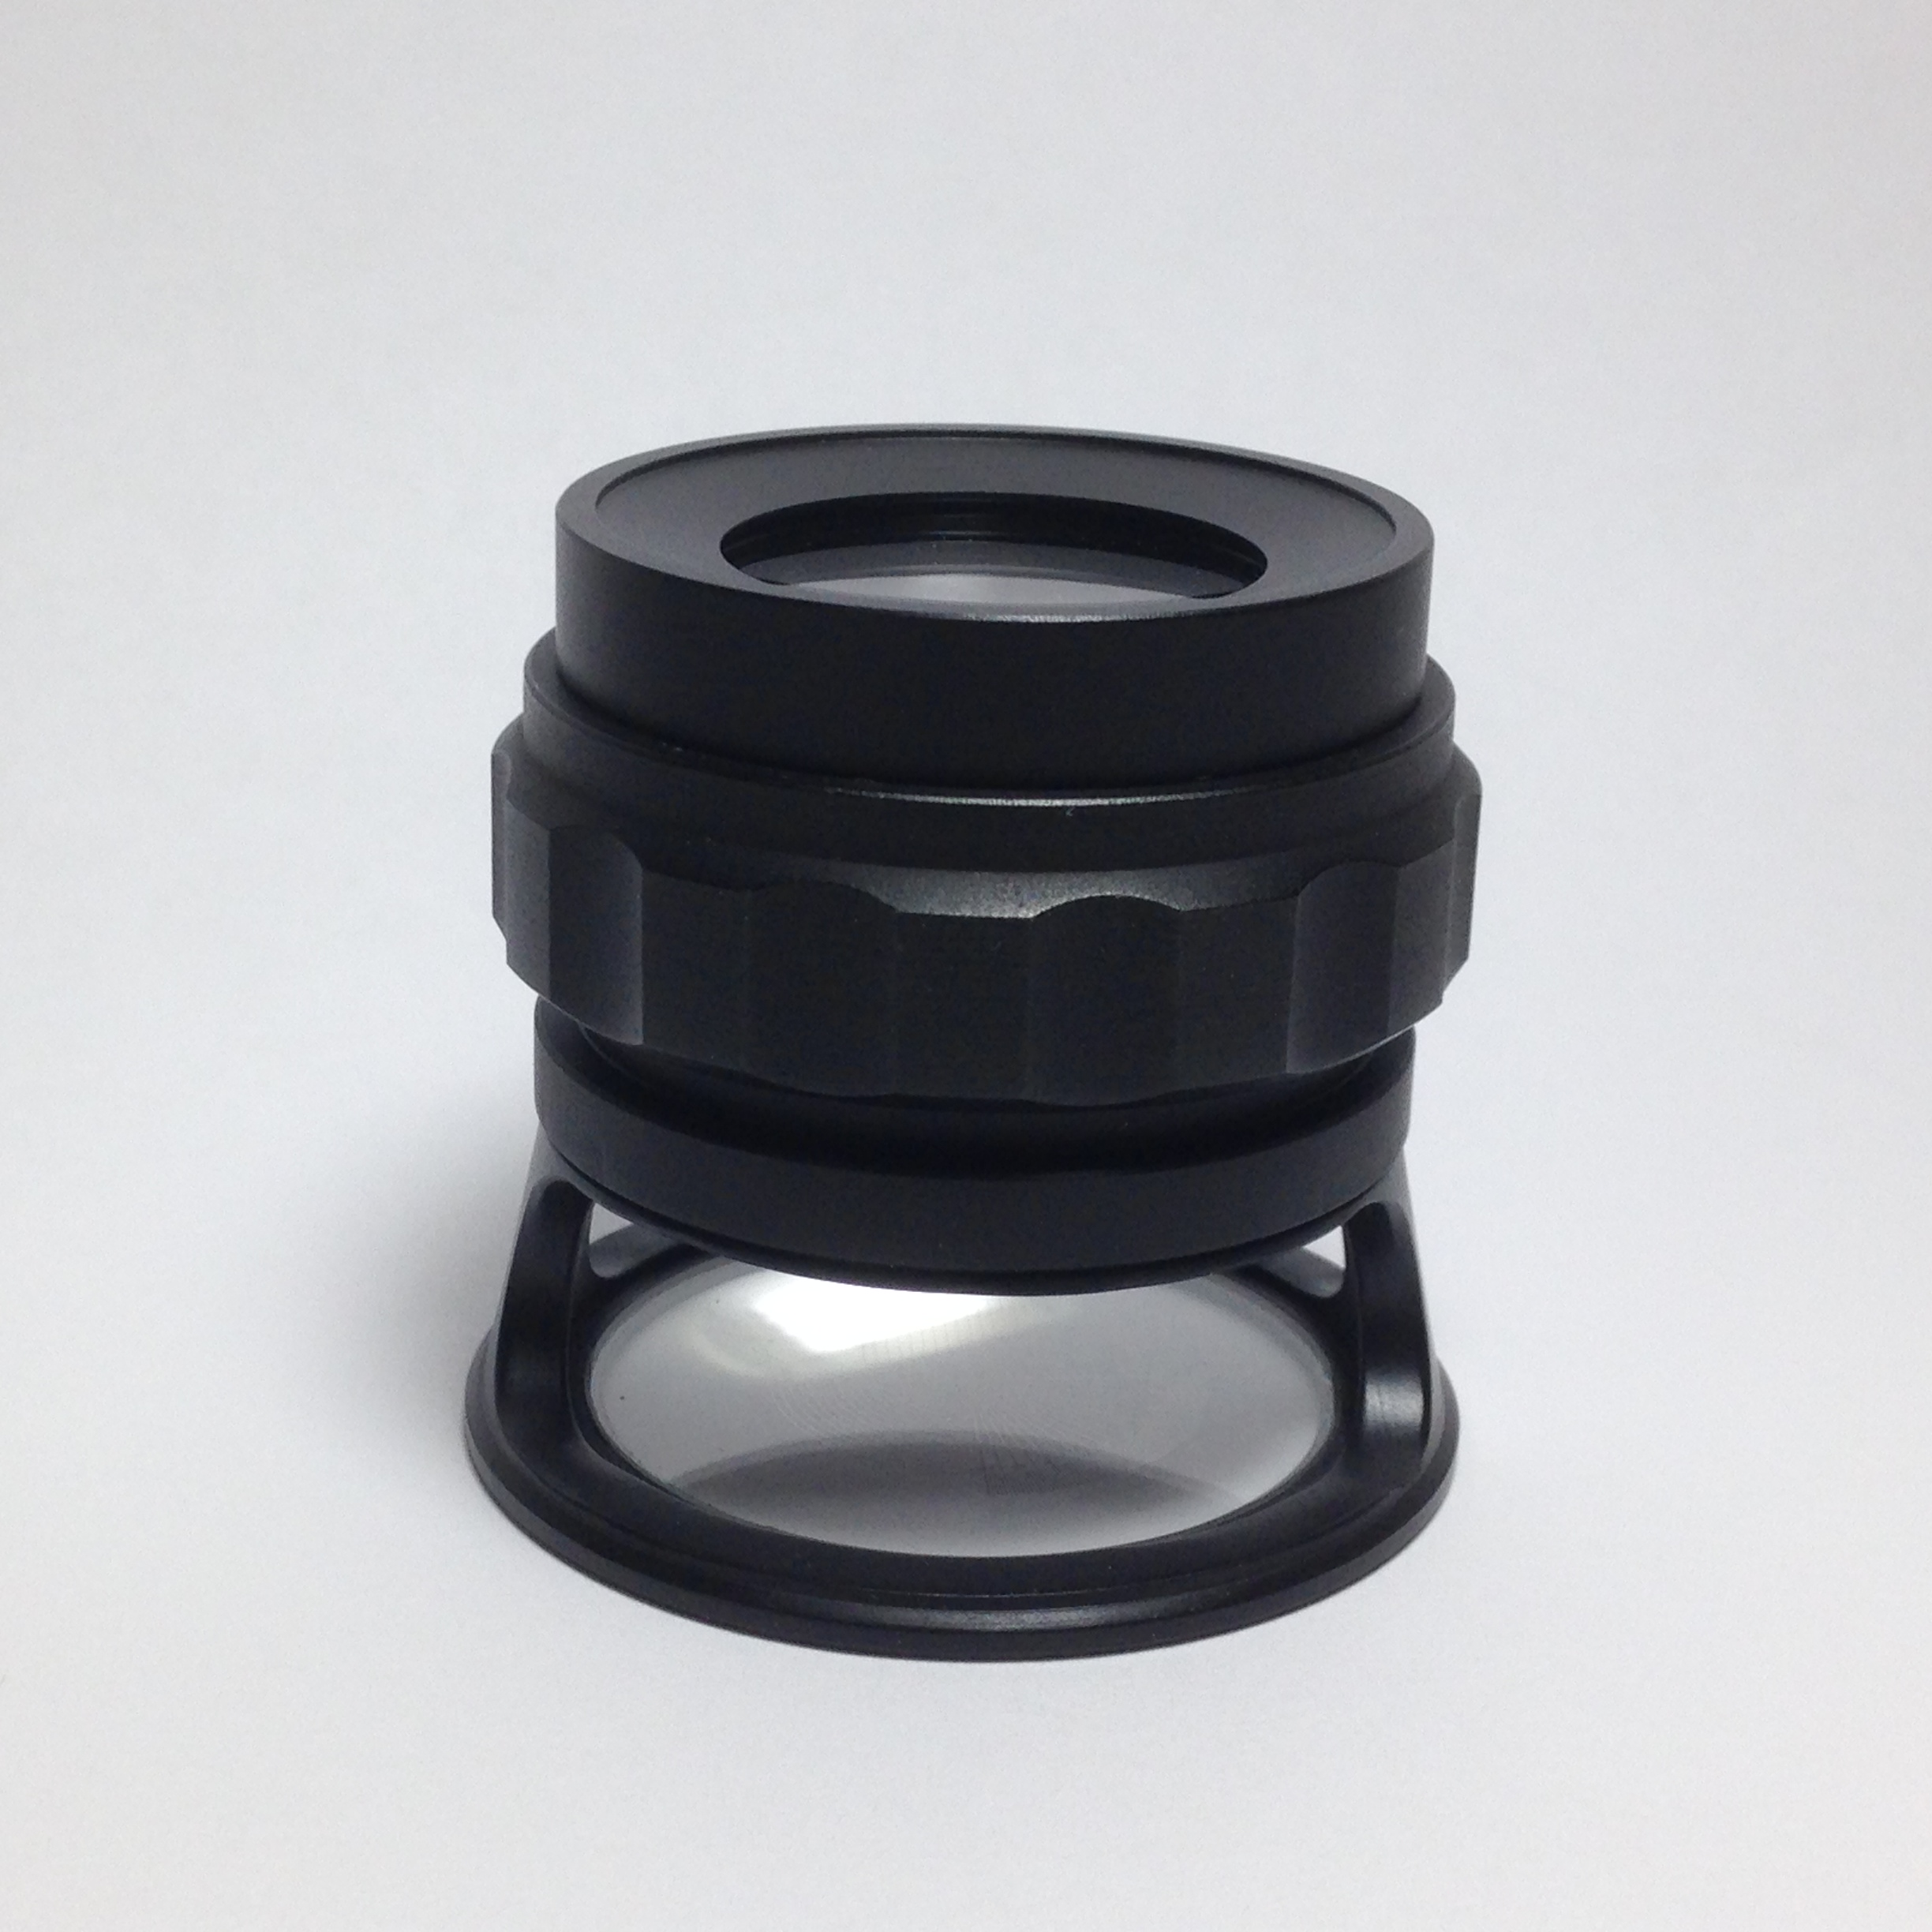 Precision Measuring Loupe from Kassoy